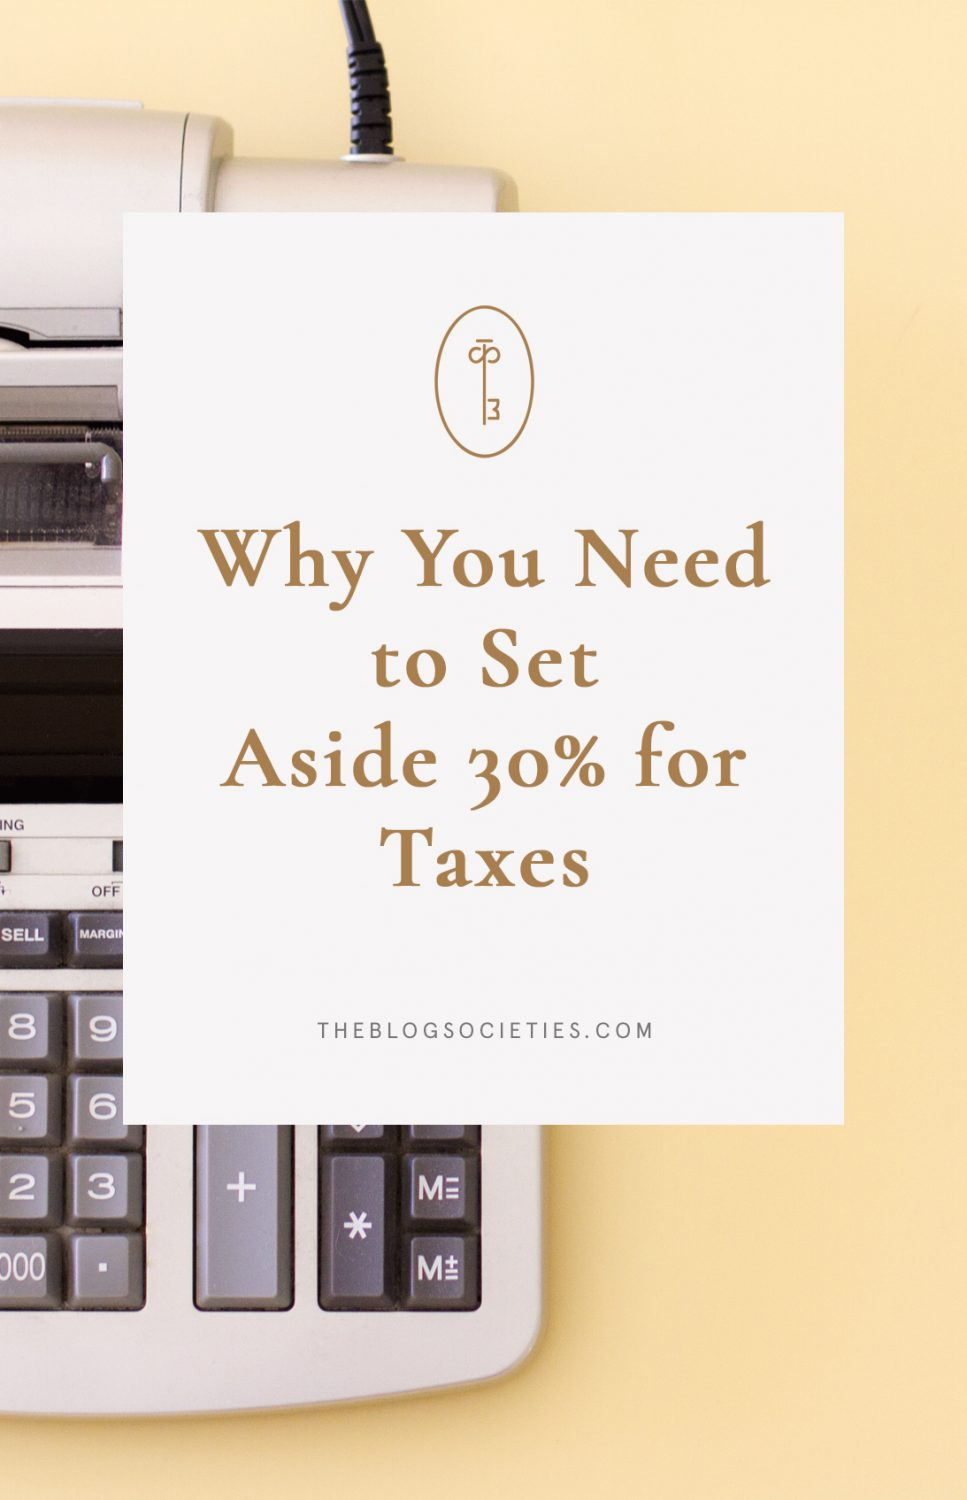 Why You Need to Set Aside 30% for Taxes   The Blog Societies